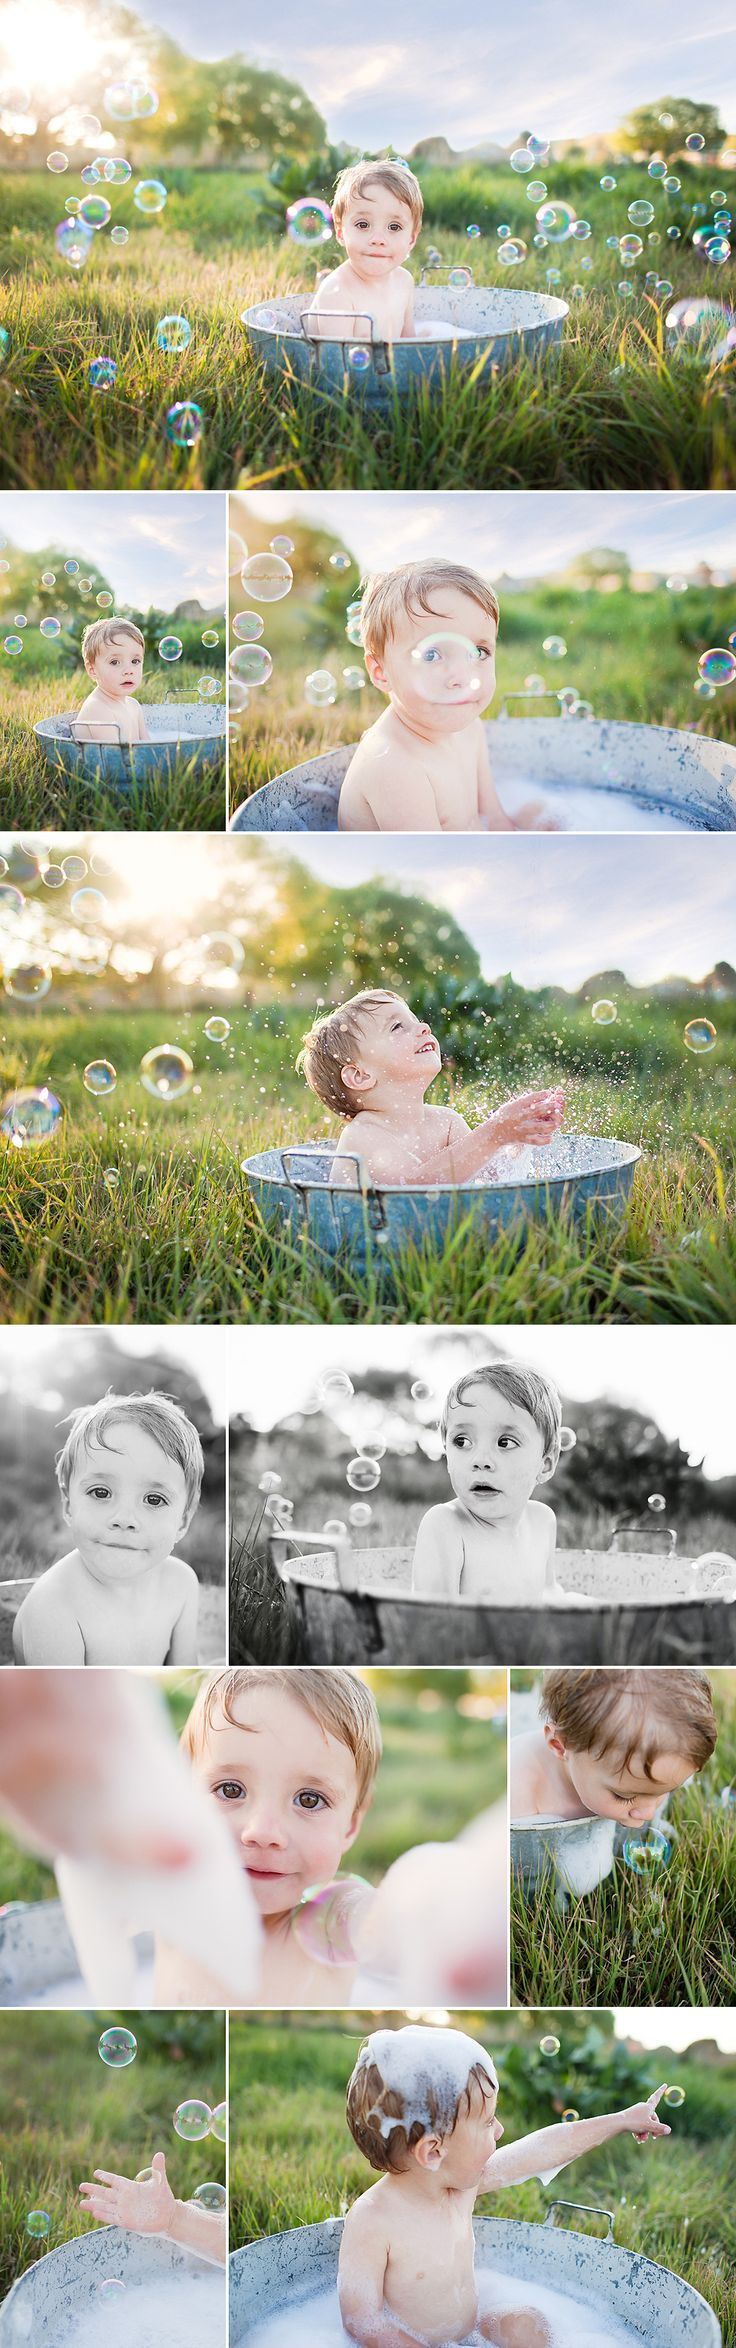 cute bubble bath photo shoot! I can so do this in my back yard with the oriental grass as the background!